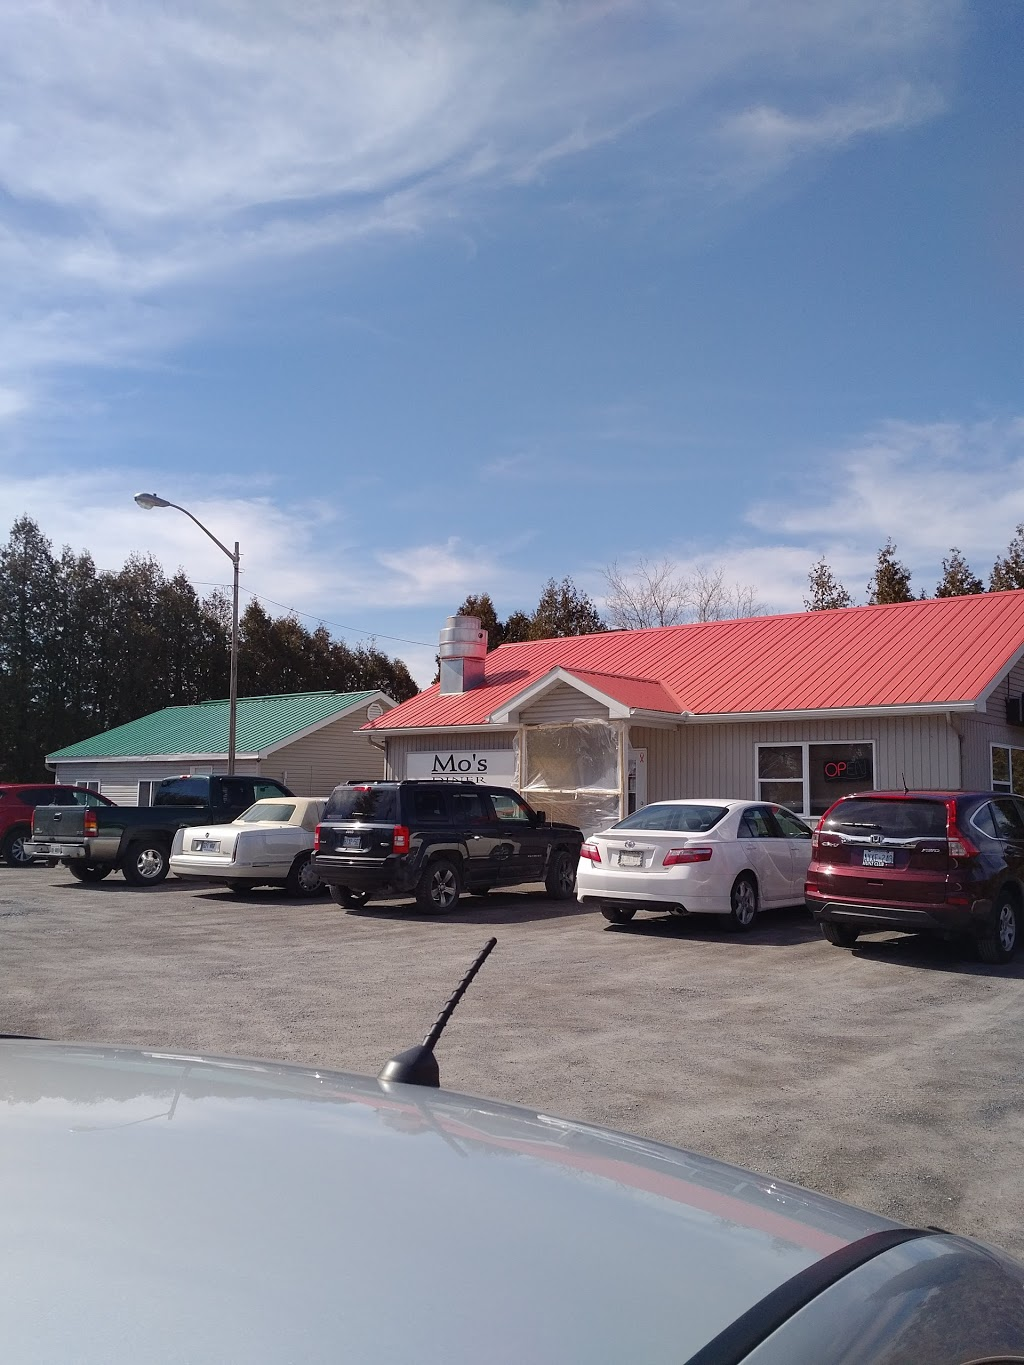 Mos Diner | restaurant | 5104 ON-138, St Andrews West, ON K0C 2A0, Canada | 6139384720 OR +1 613-938-4720